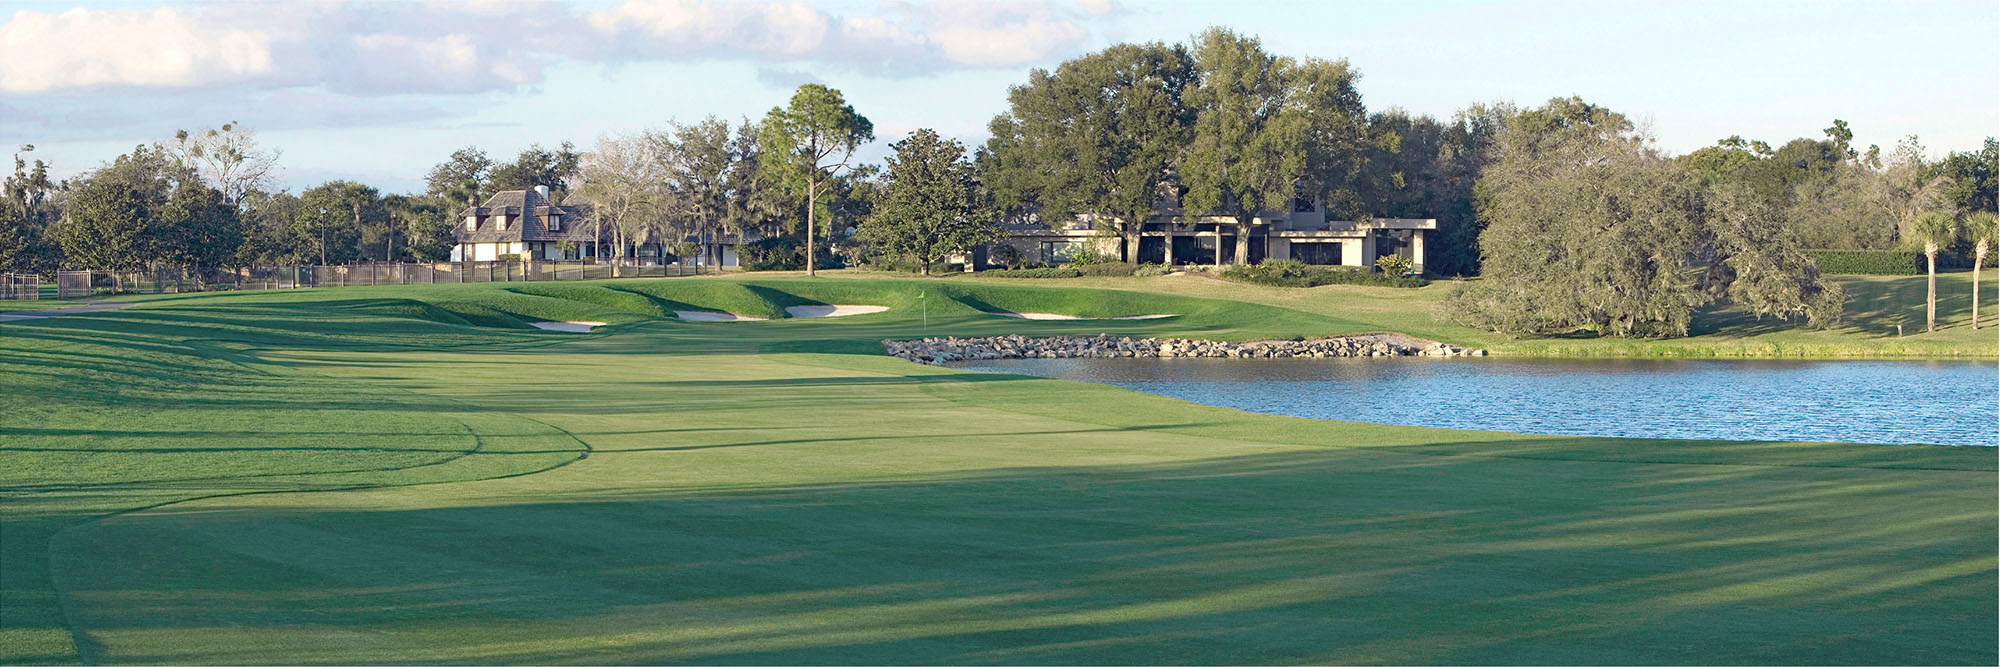 Golf Course Image - Bay Hill No. 18